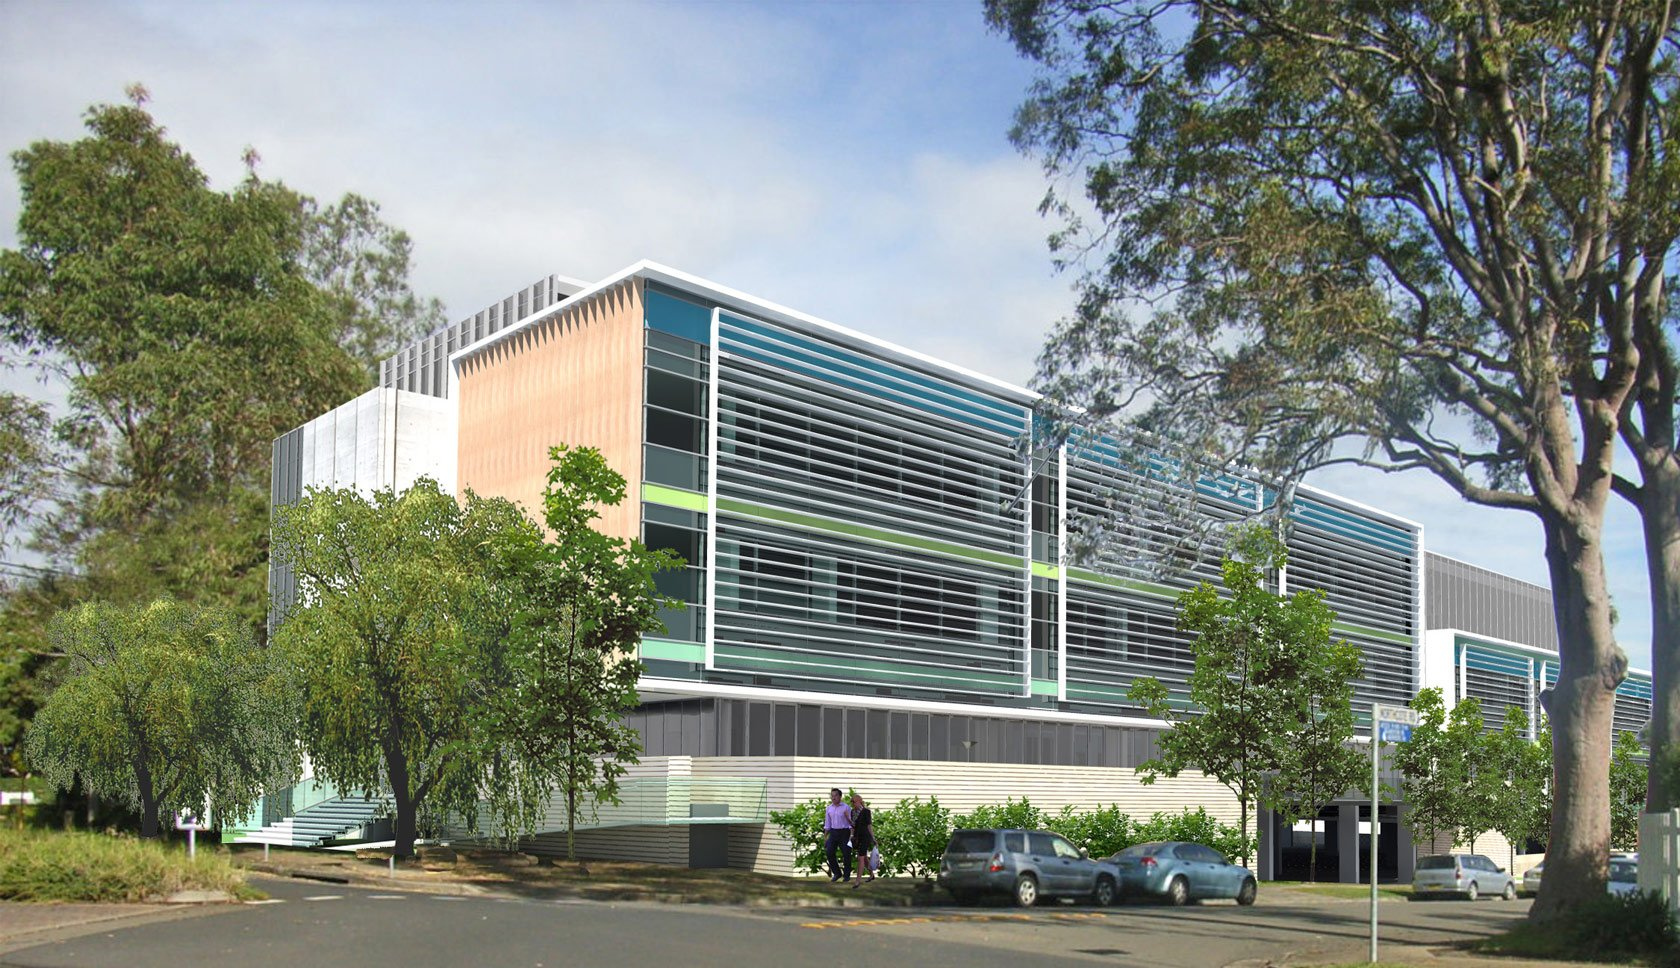 Sydney Adventist day surgery side view design Hornsby